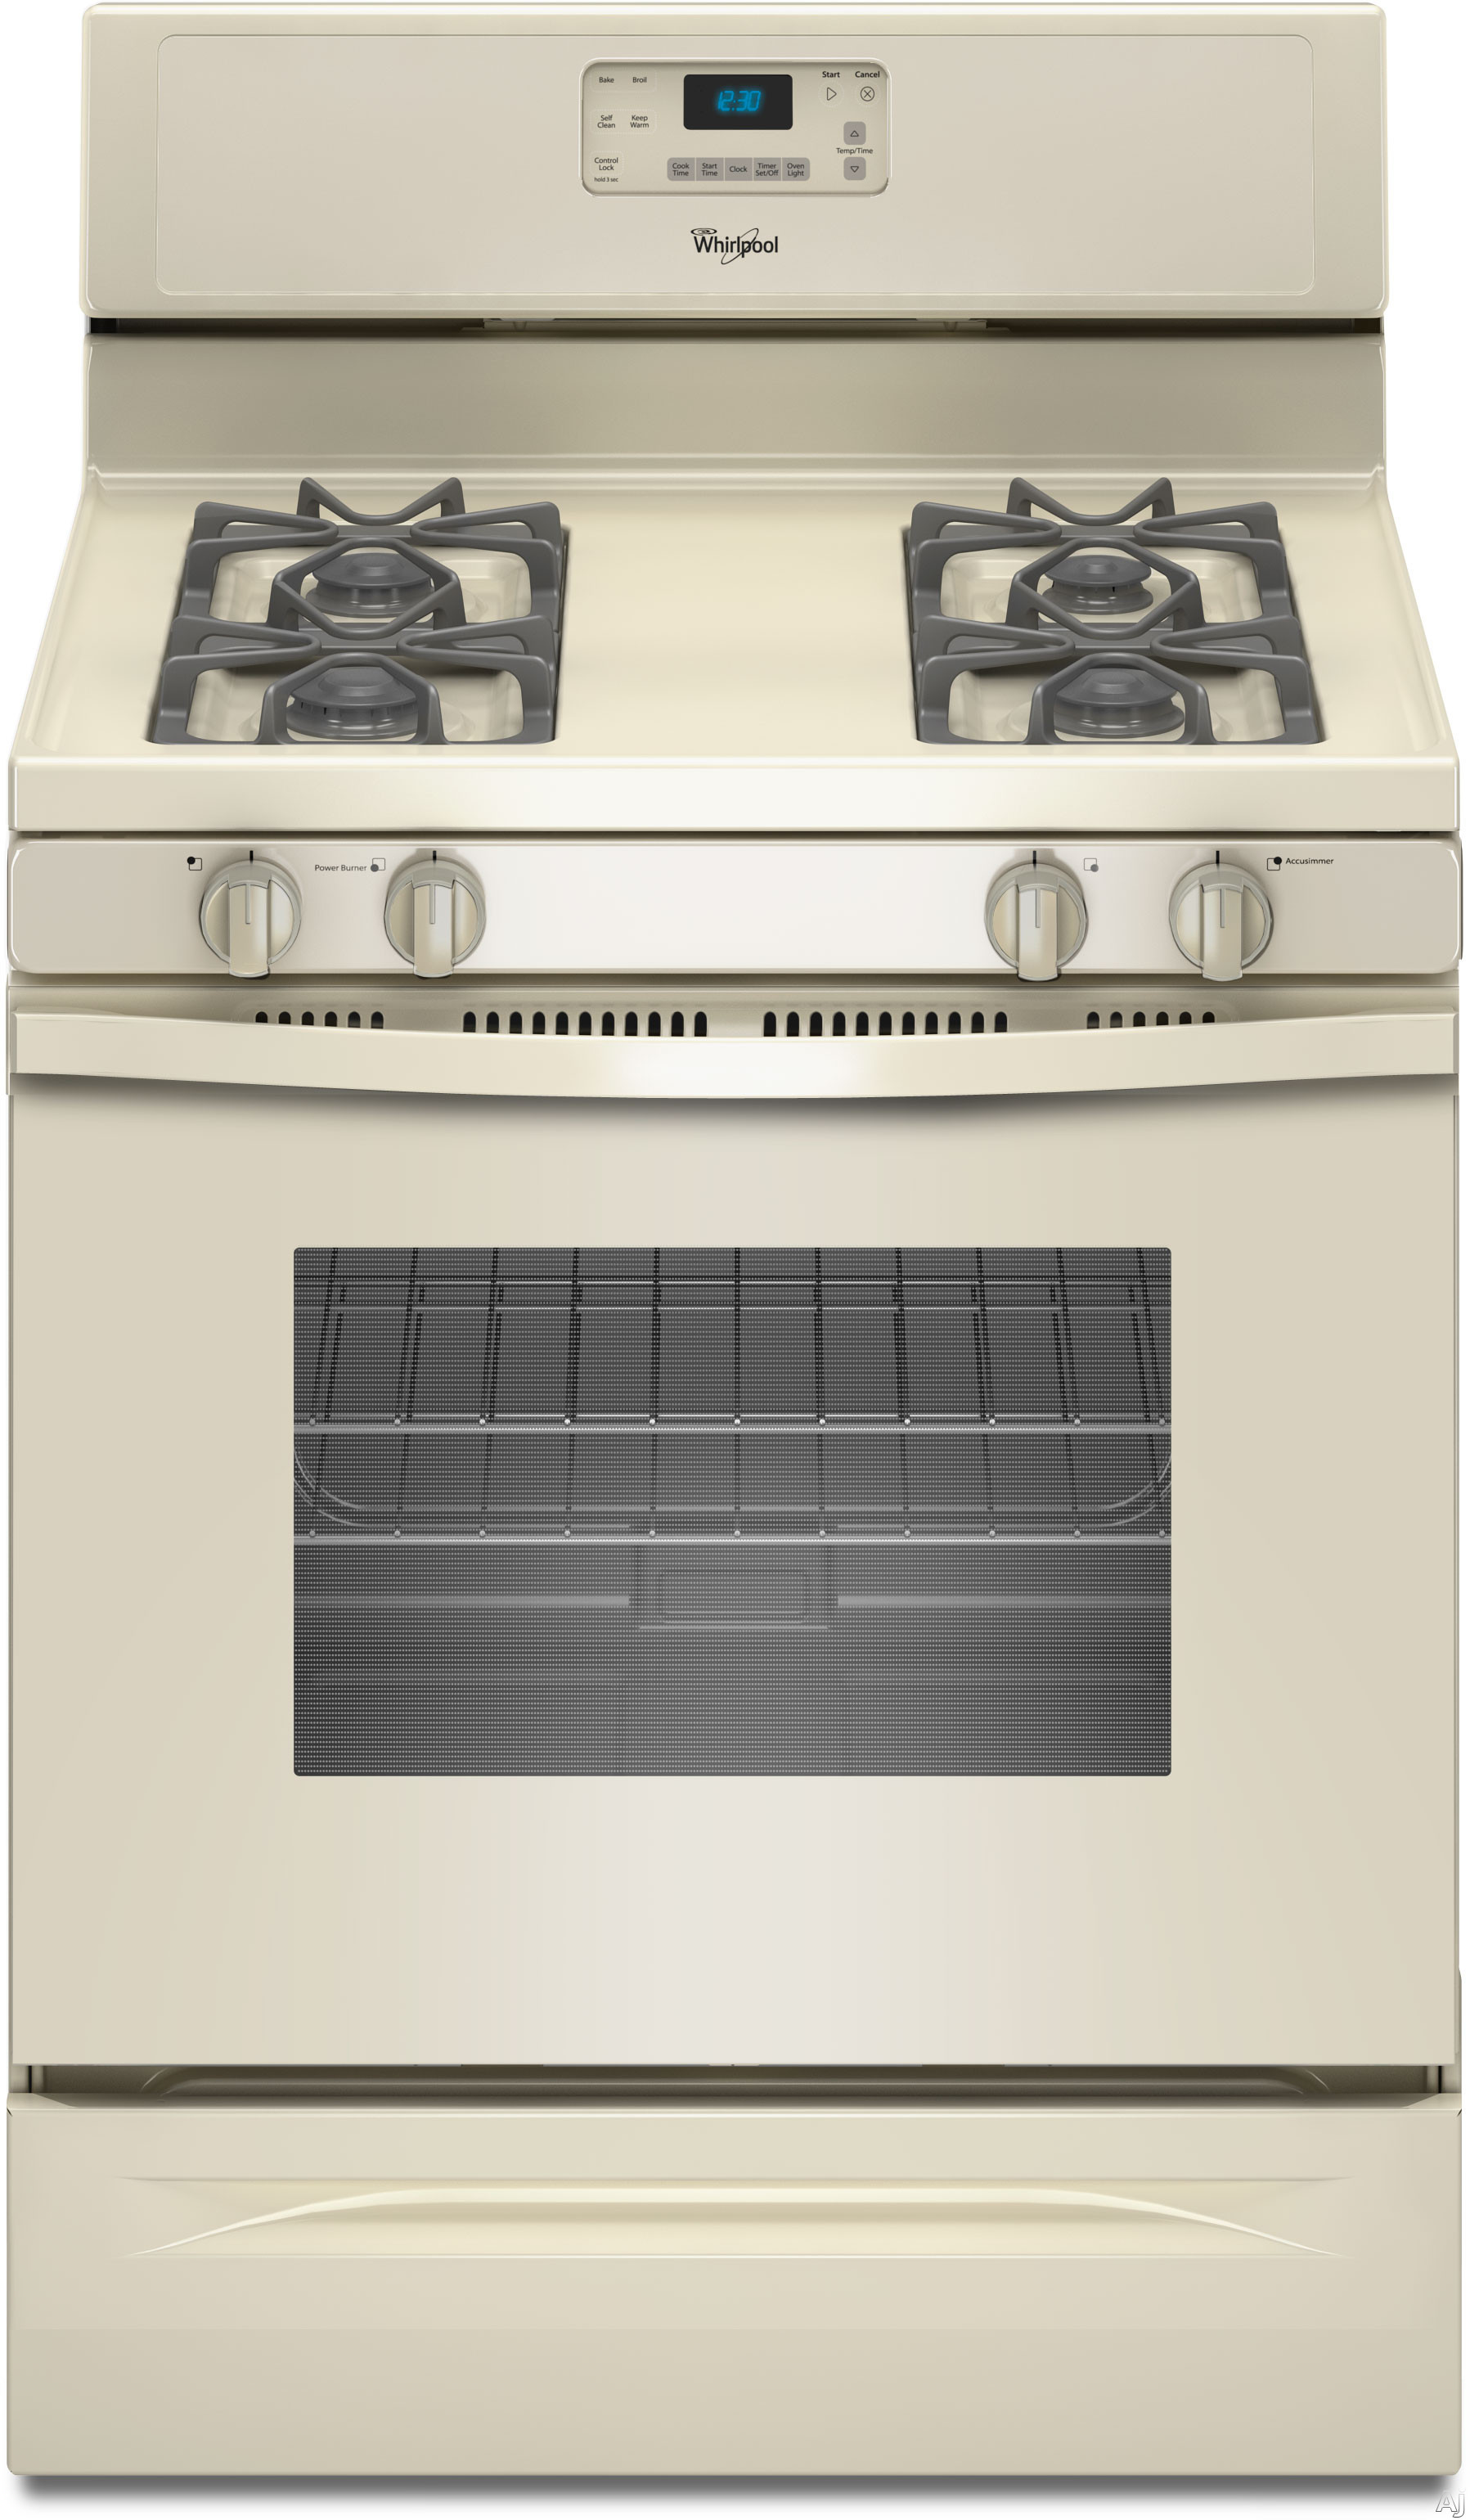 Whirlpool wfg510s0at 30 freestanding gas range with 4 sealed burners 5 0 cu ft self cleaning - Clean gas range keep looking new ...